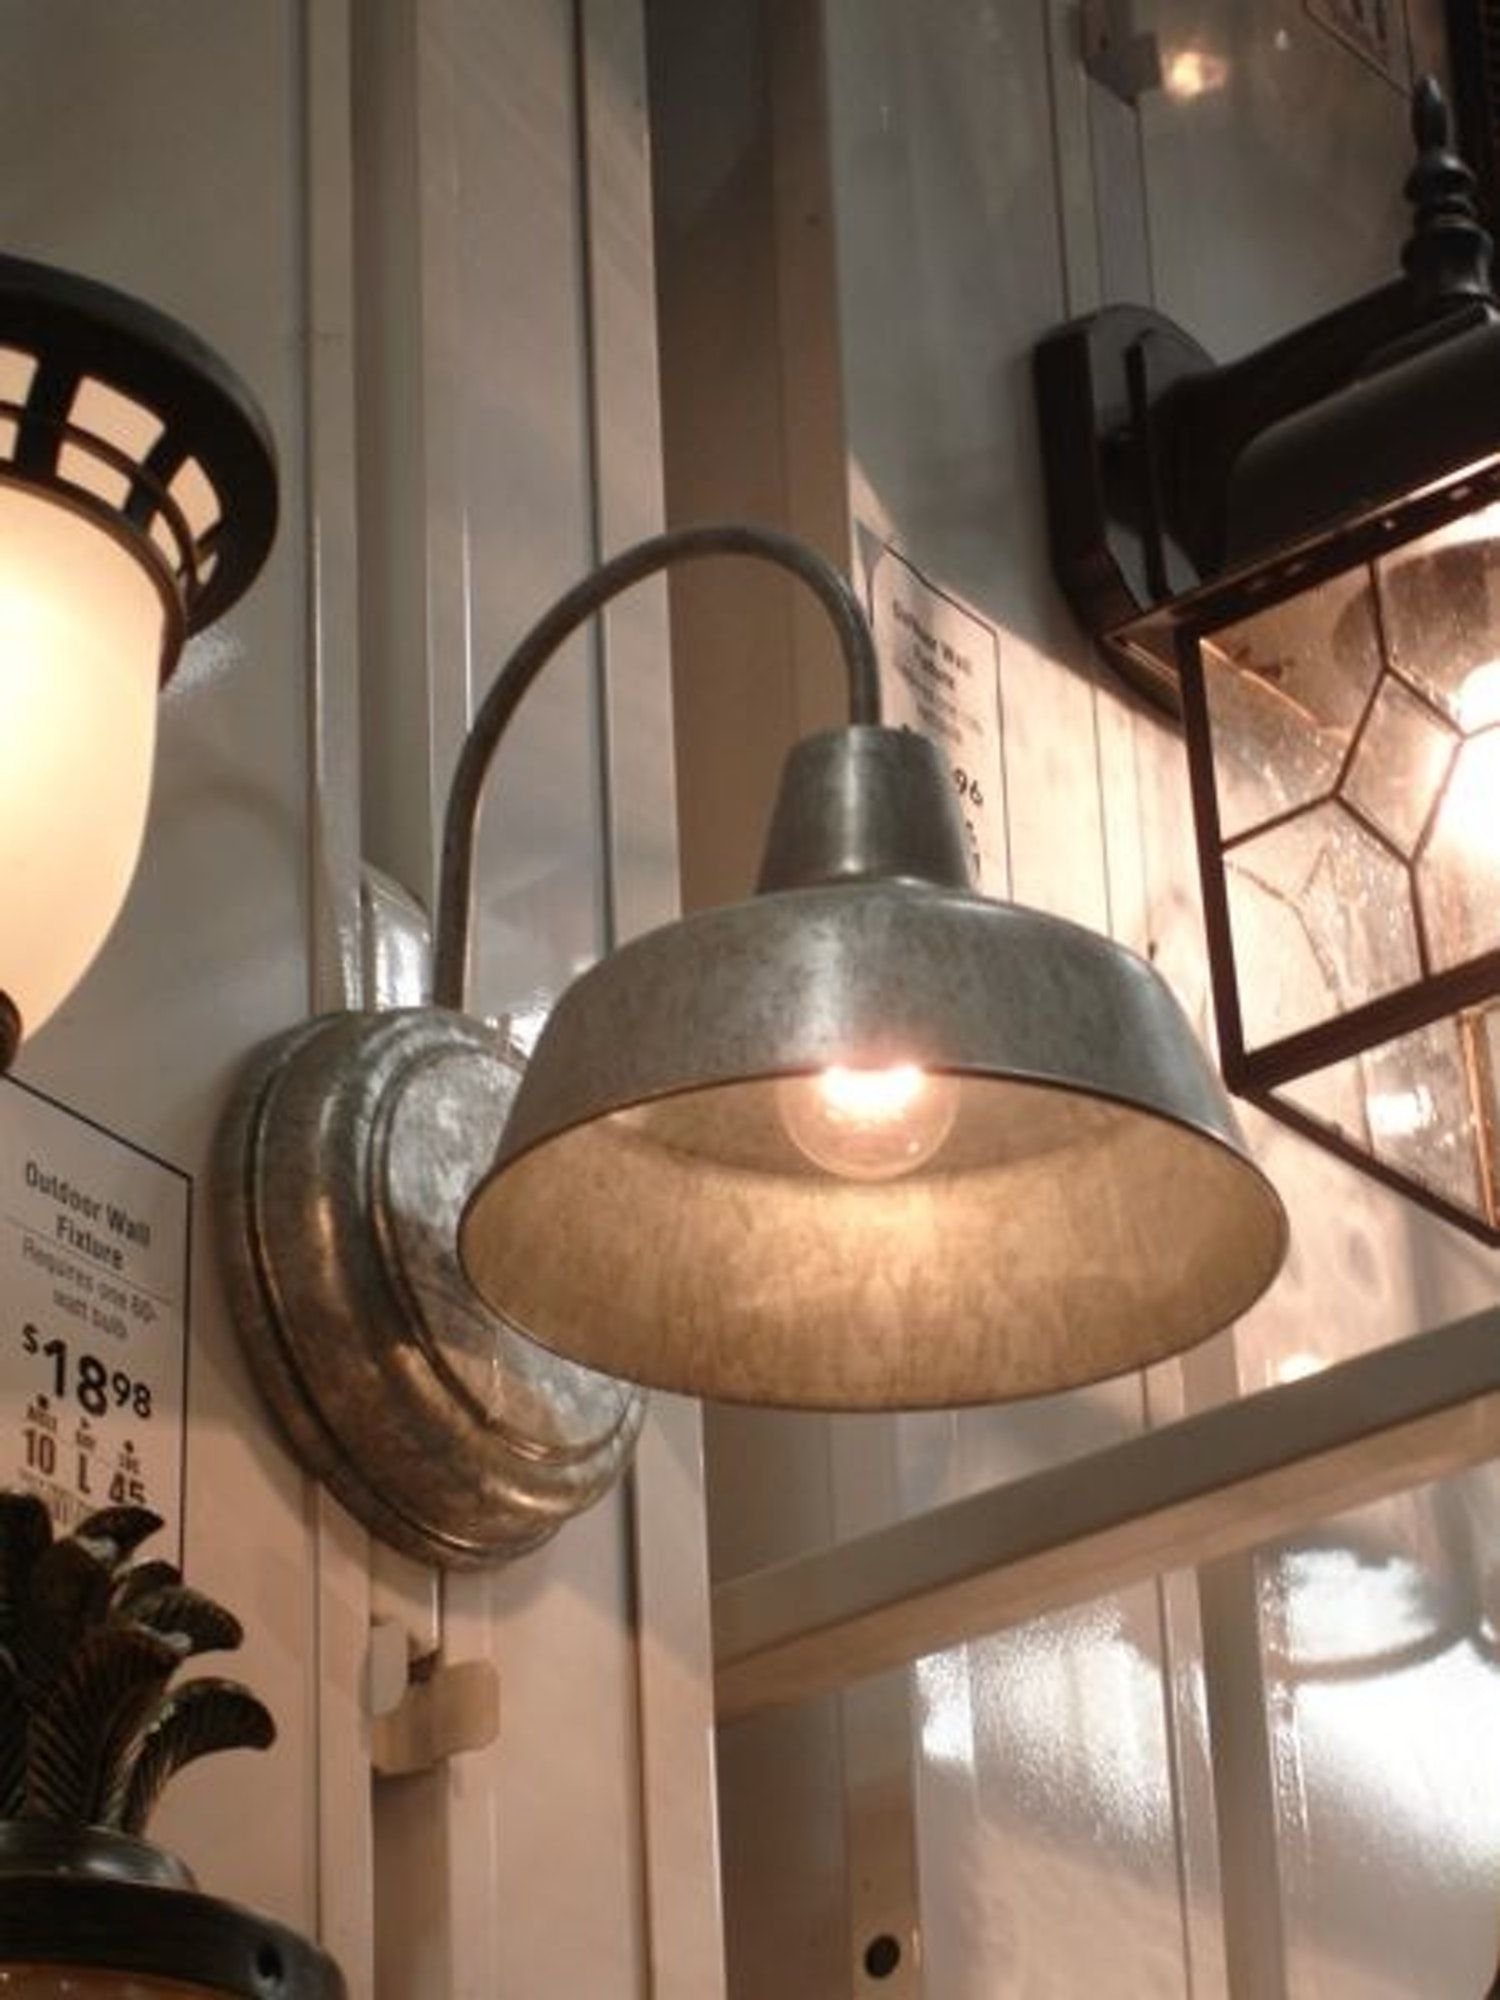 8 Good Things at Lowe's Barn lighting, Farmhouse kitchen